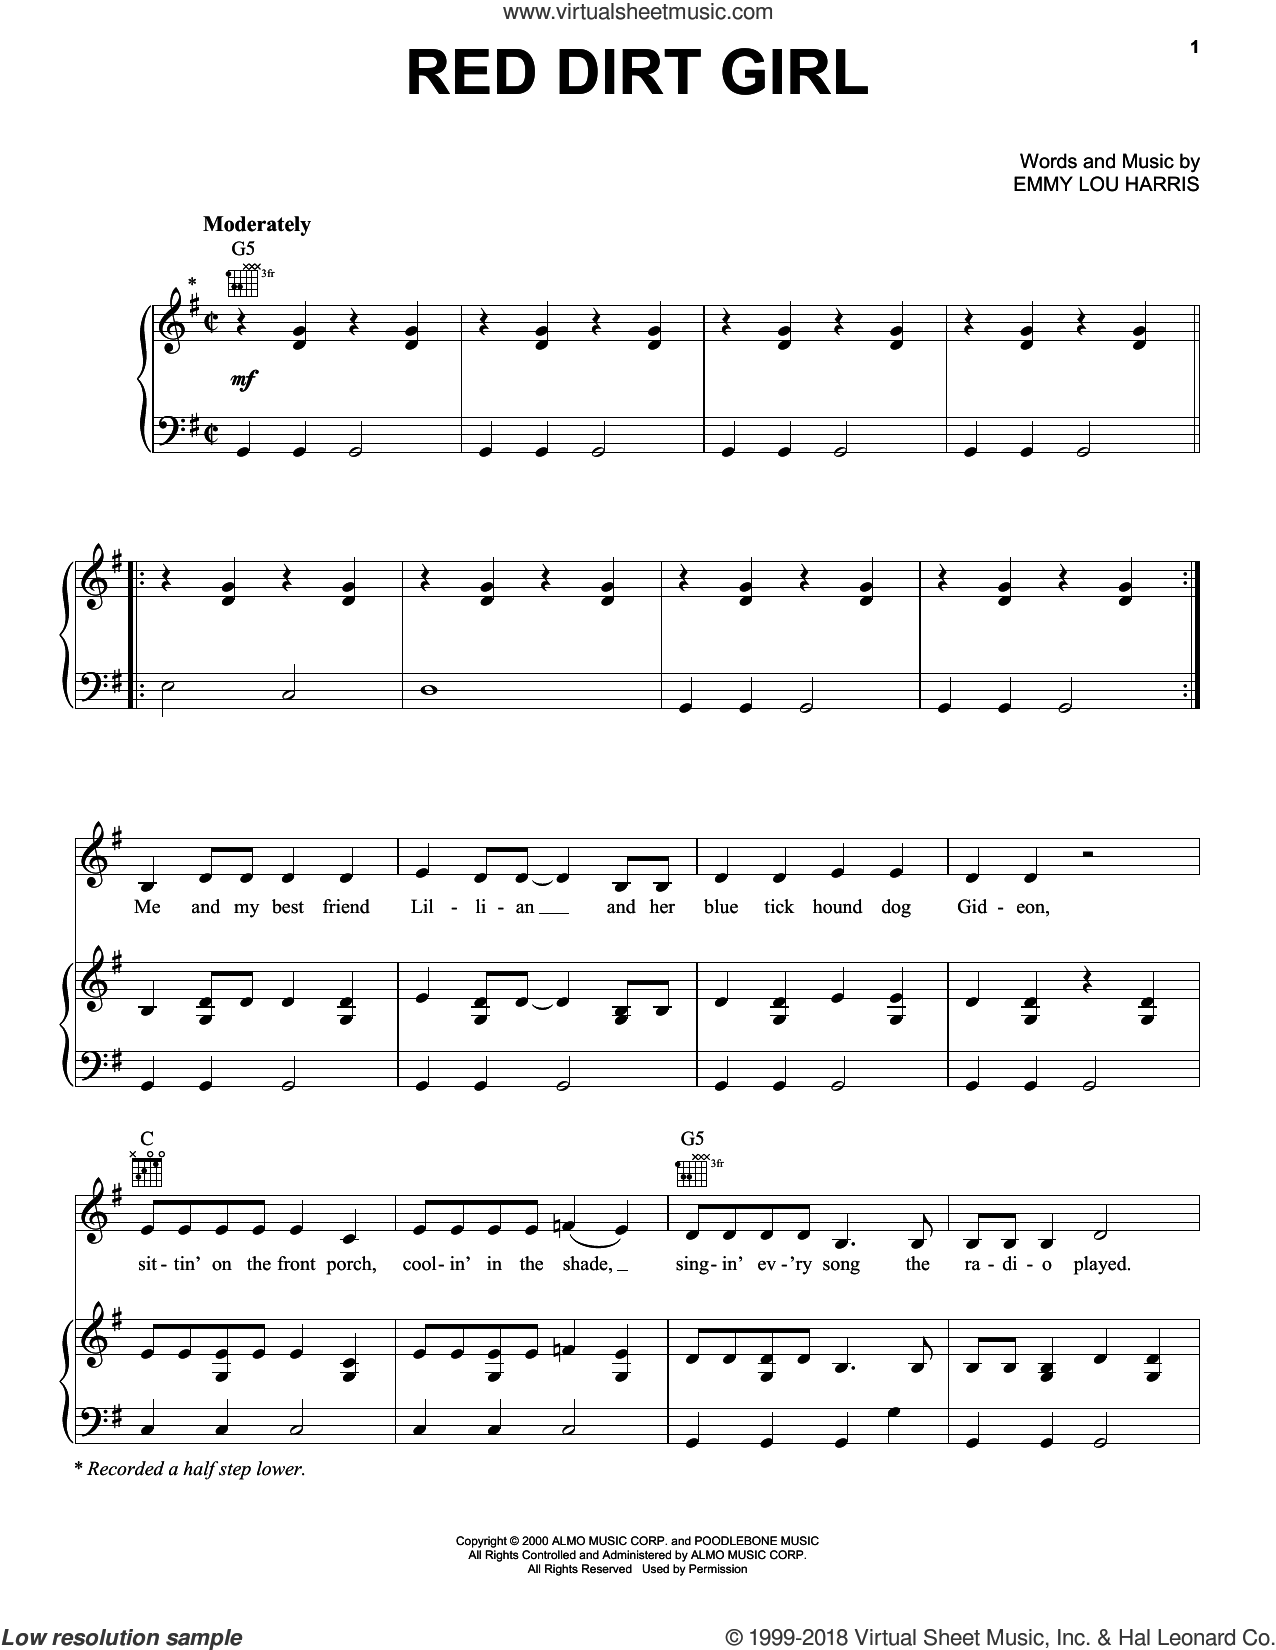 Red Dirt Girl sheet music for voice, piano or guitar by Emmylou Harris, intermediate skill level